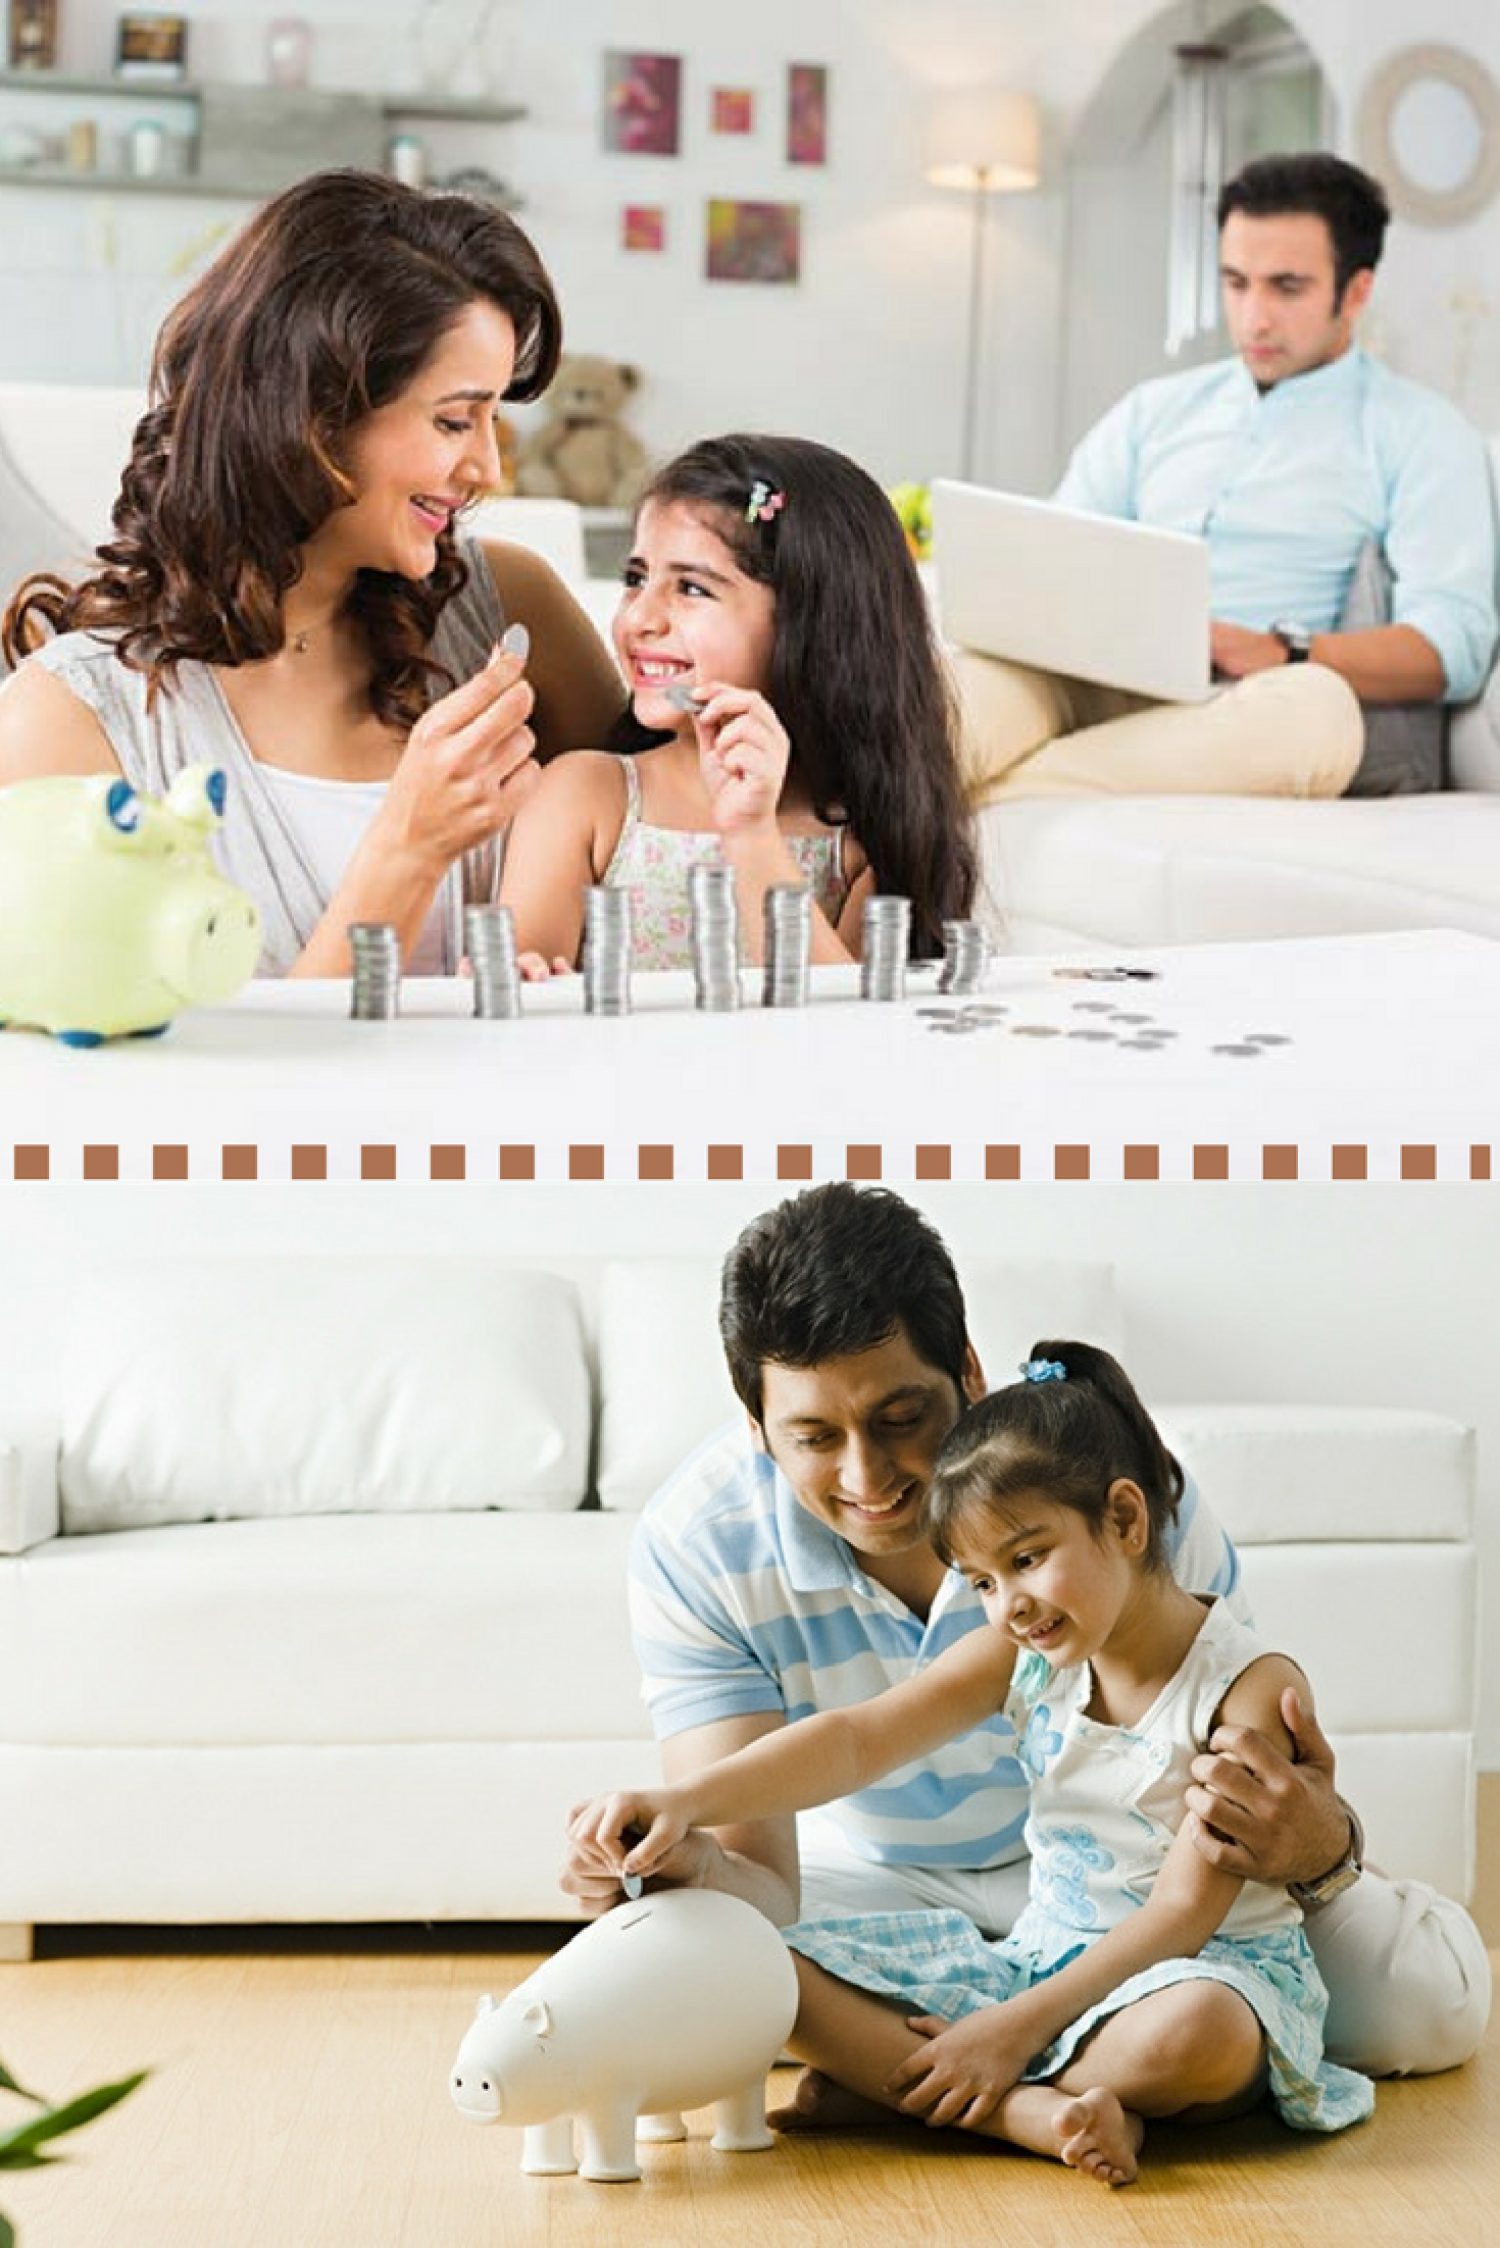 Child Insurance & Solutions | Life Insurance Company, India Infographic